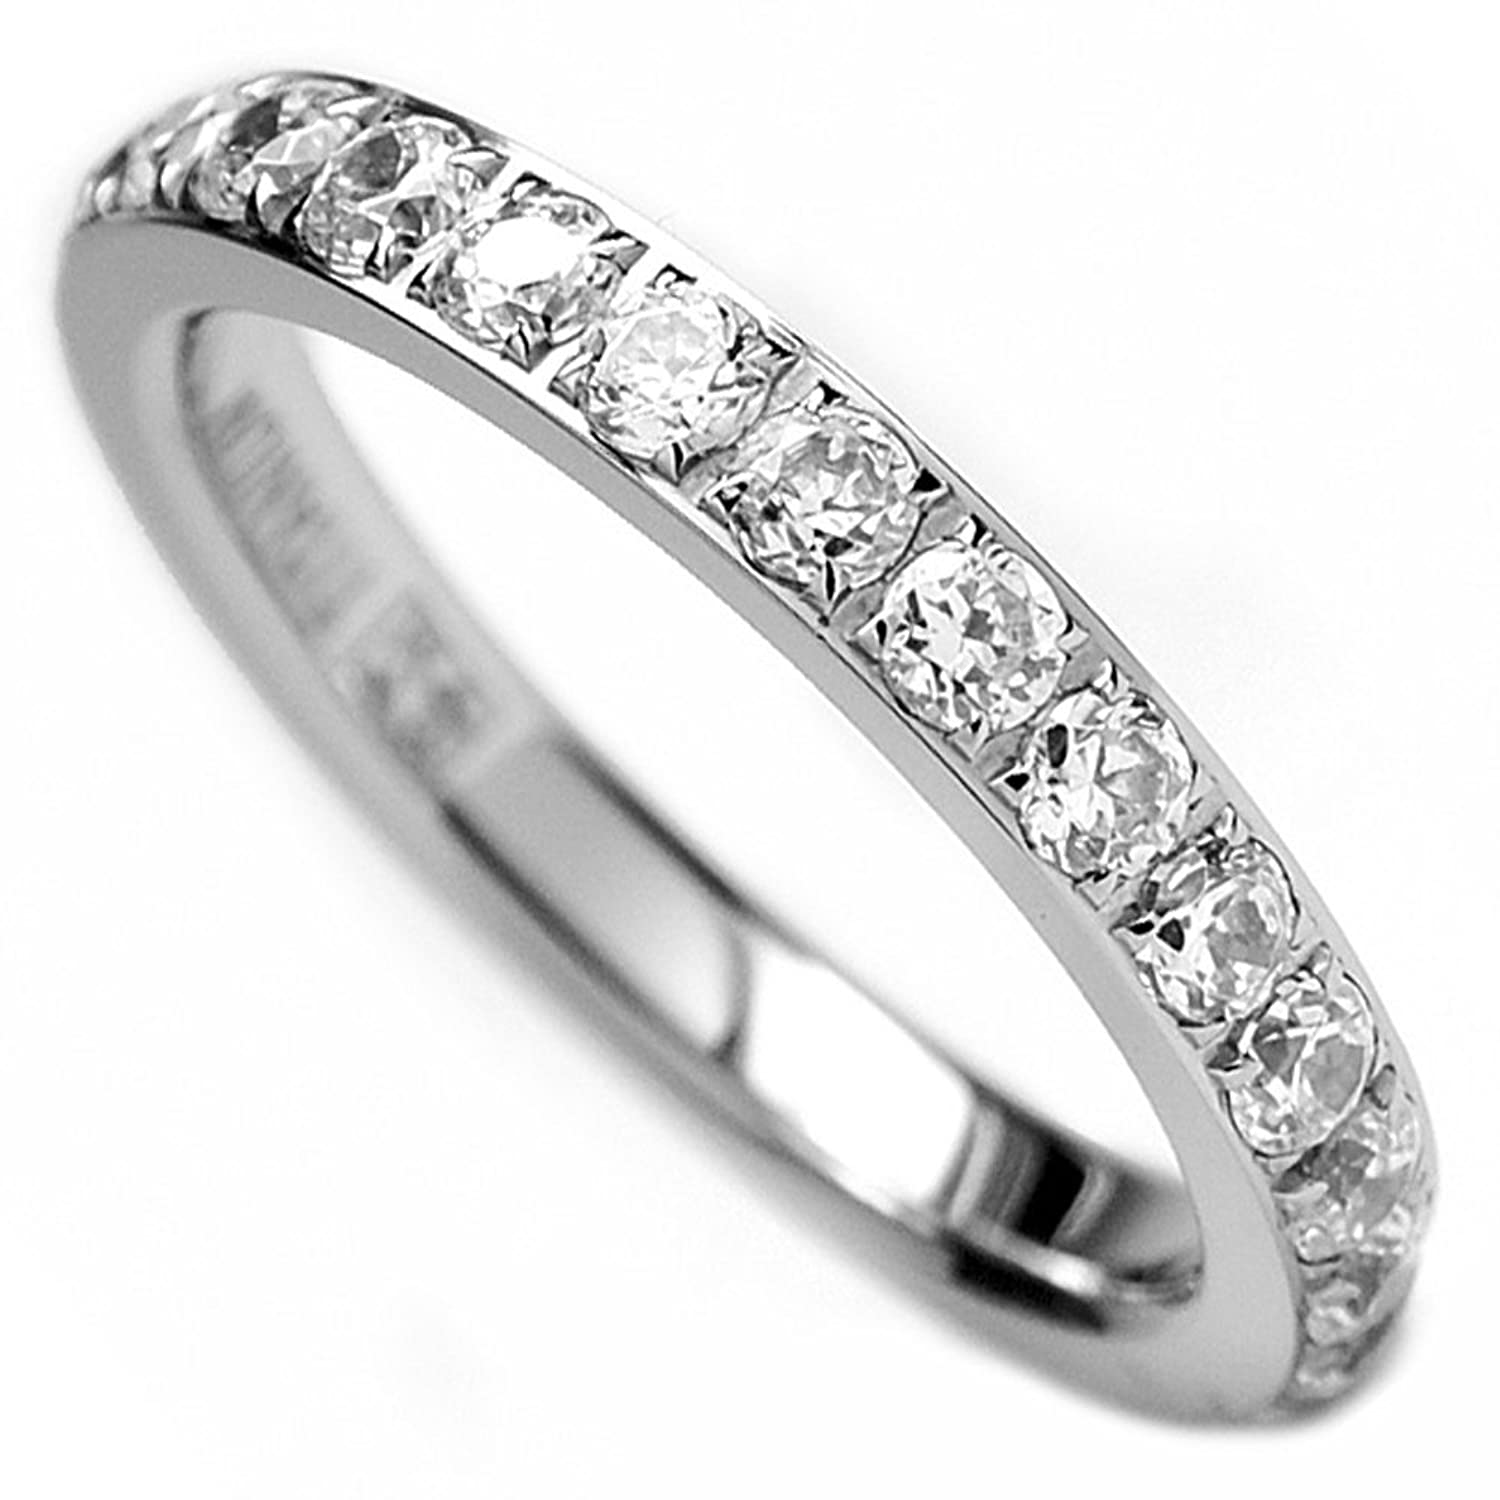 g diamond eternity rings cut shared ring wedding round gold h band prong product